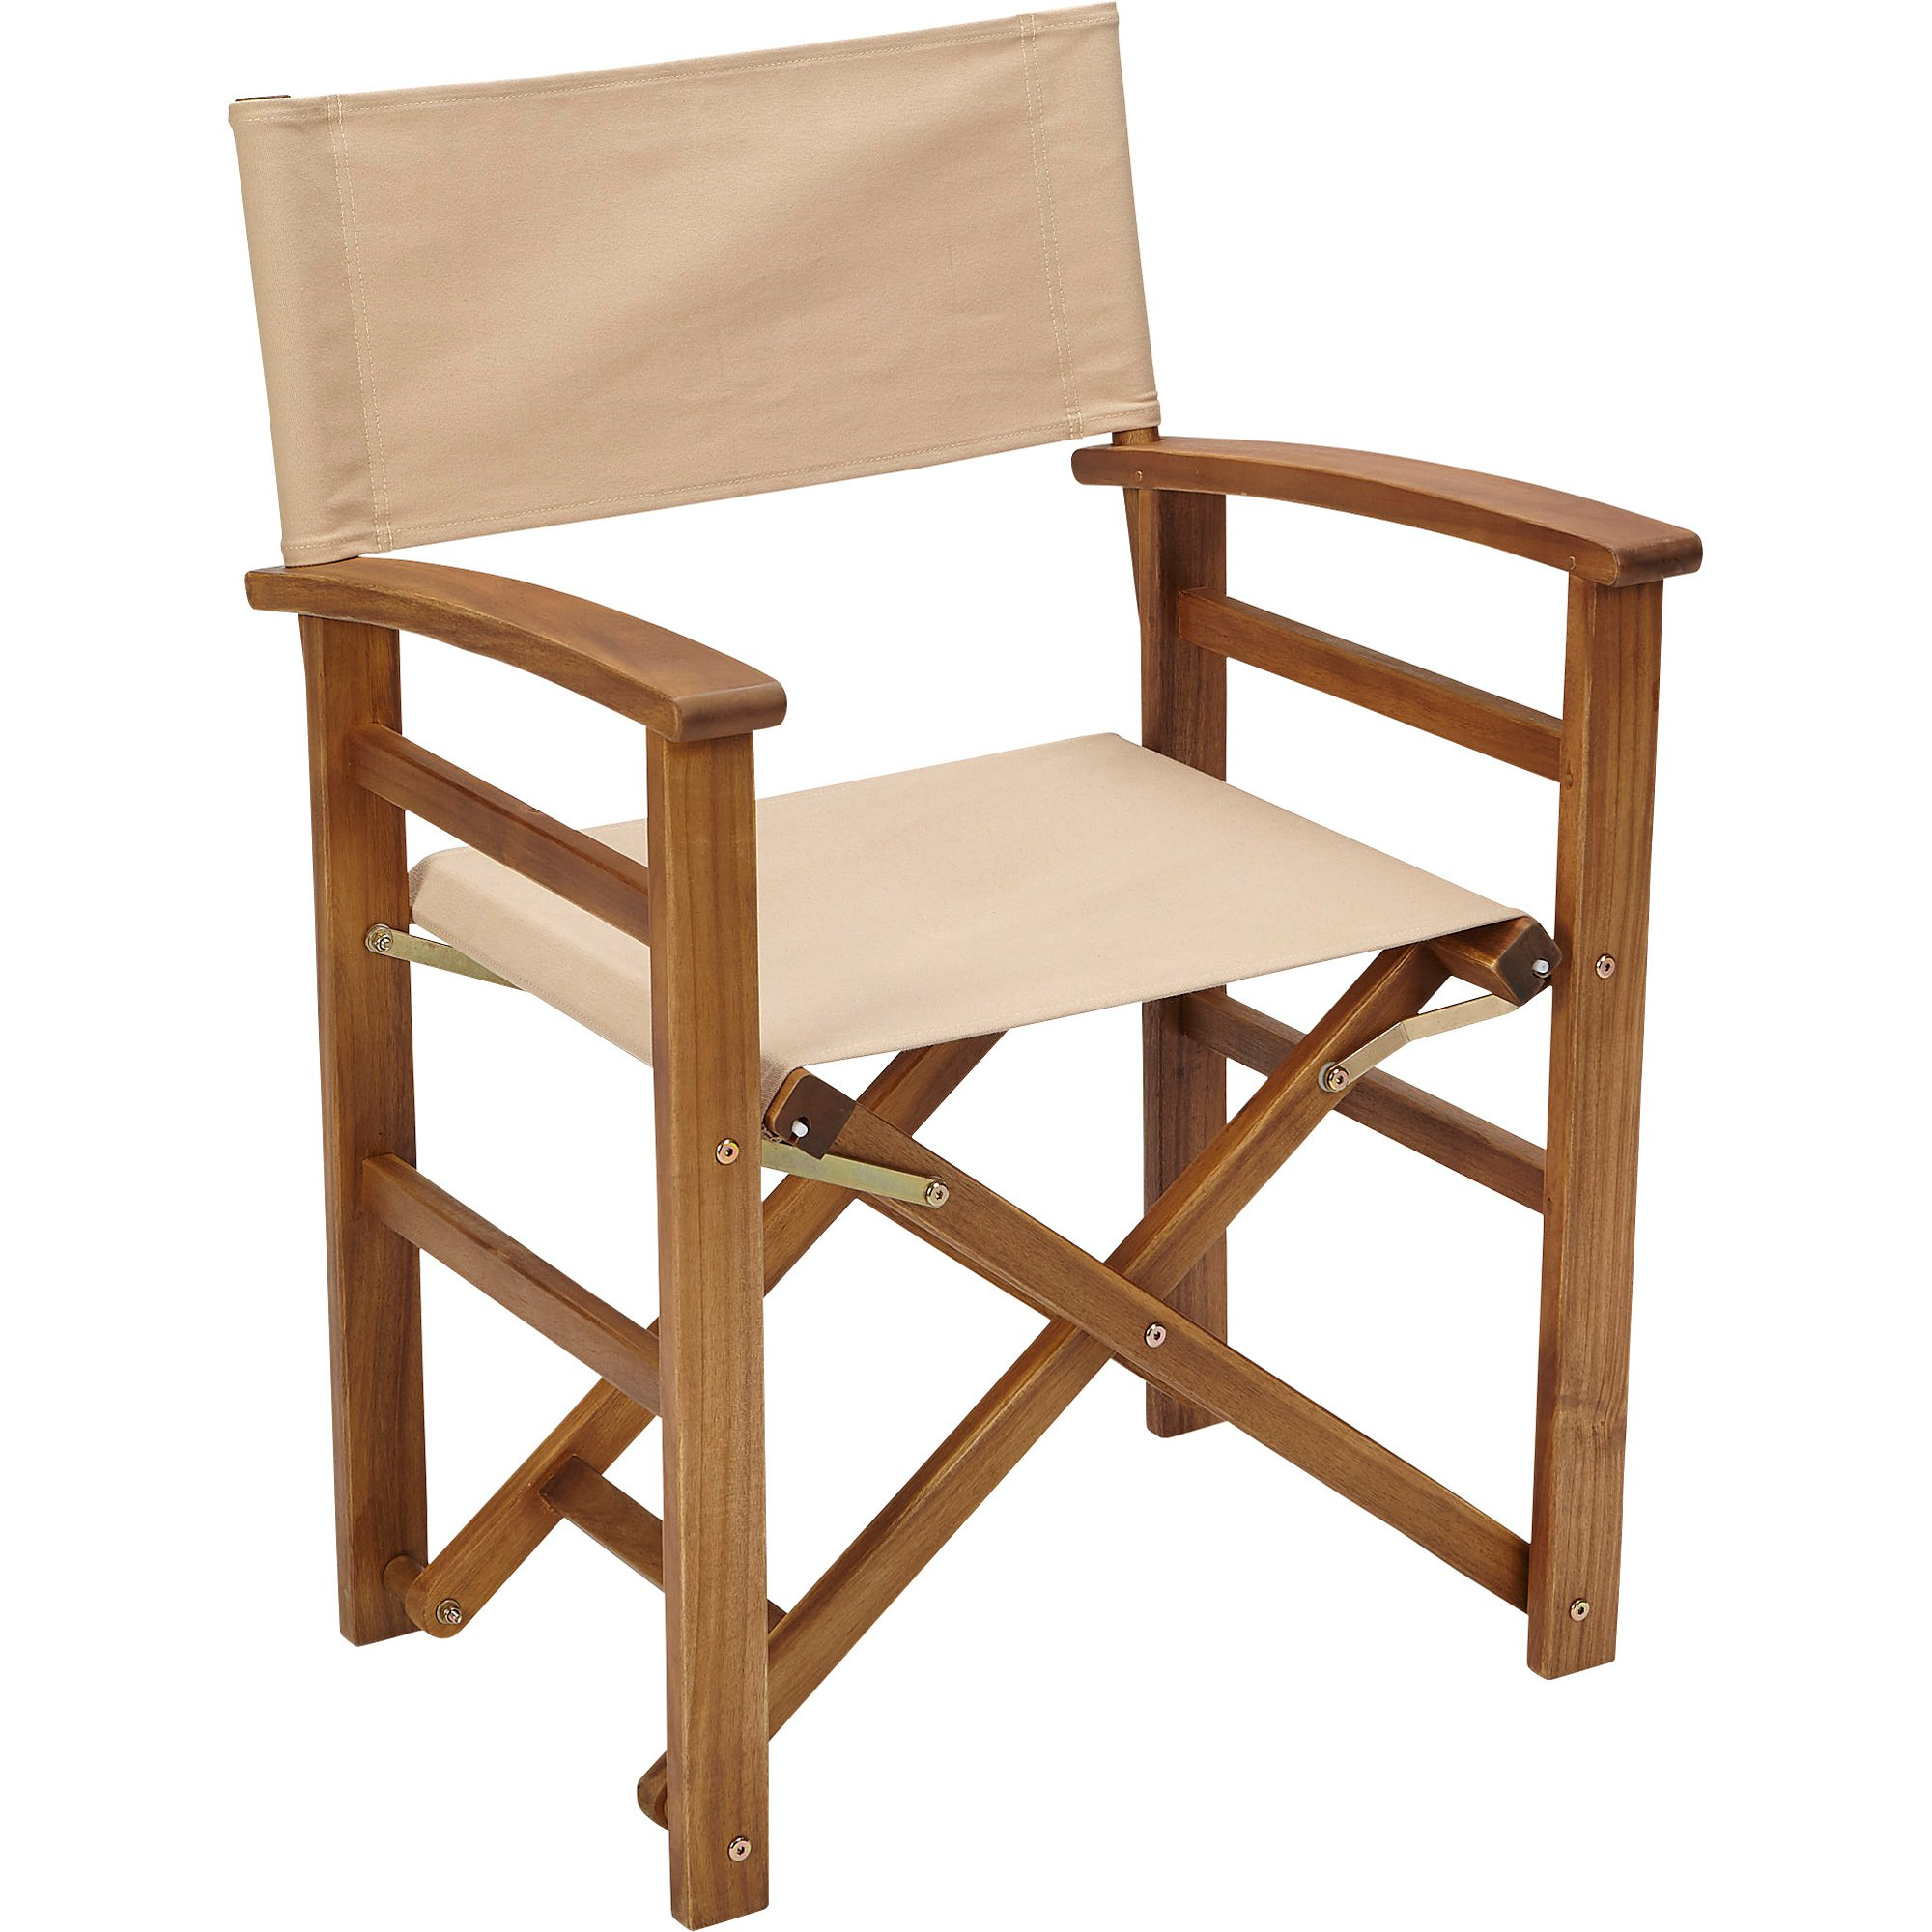 Details about acacia wood frame outdoor portable folding directors chair furniture natural